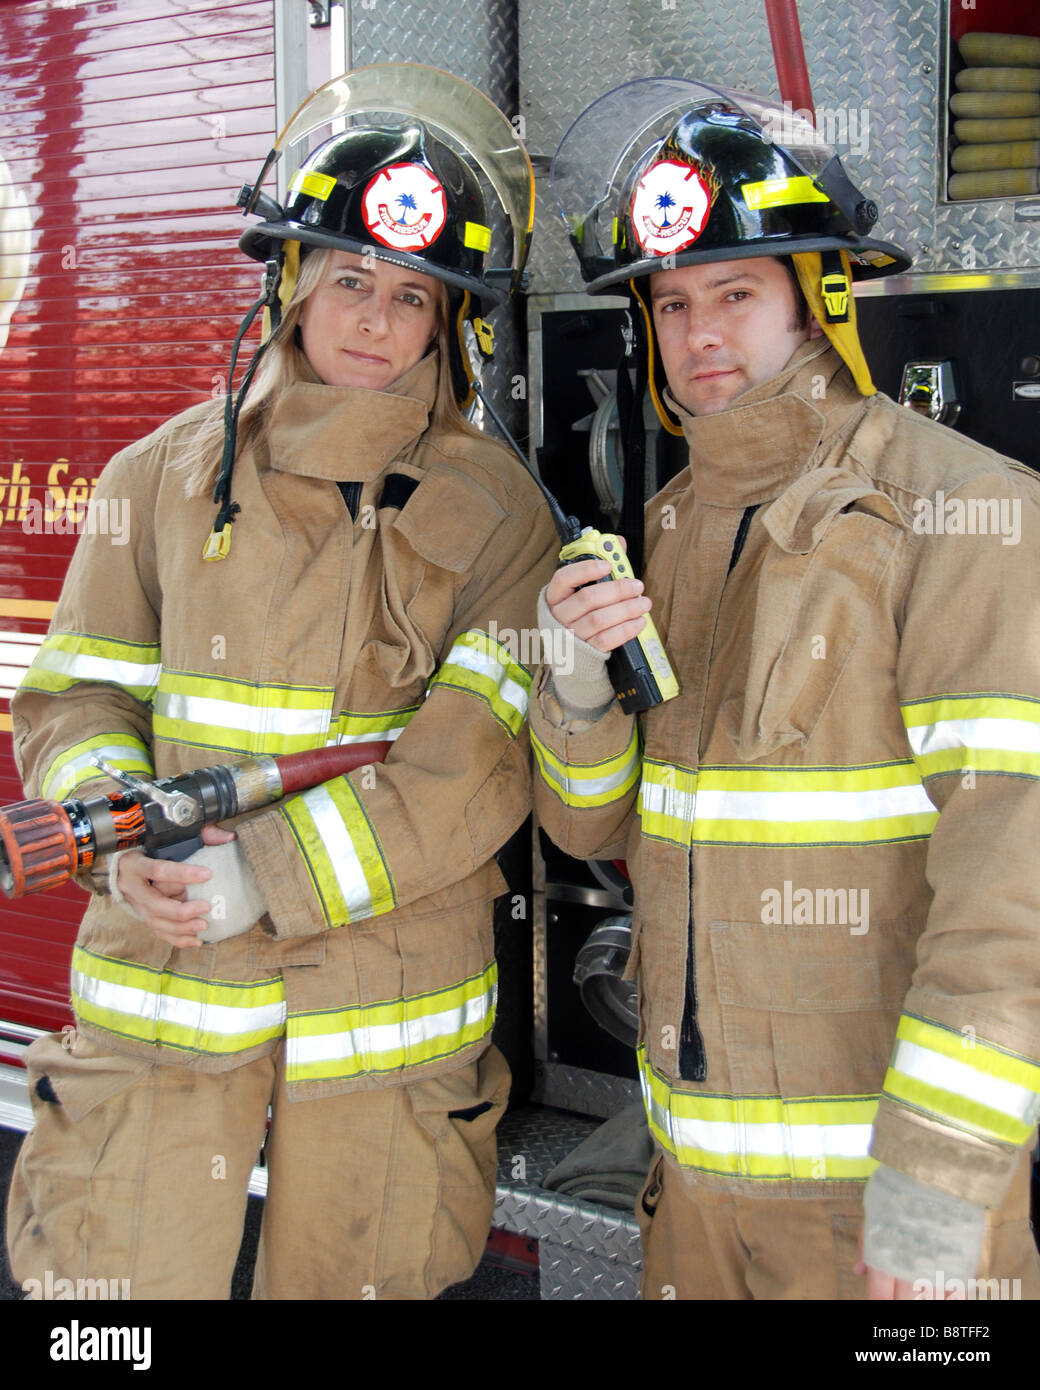 Female firefighters